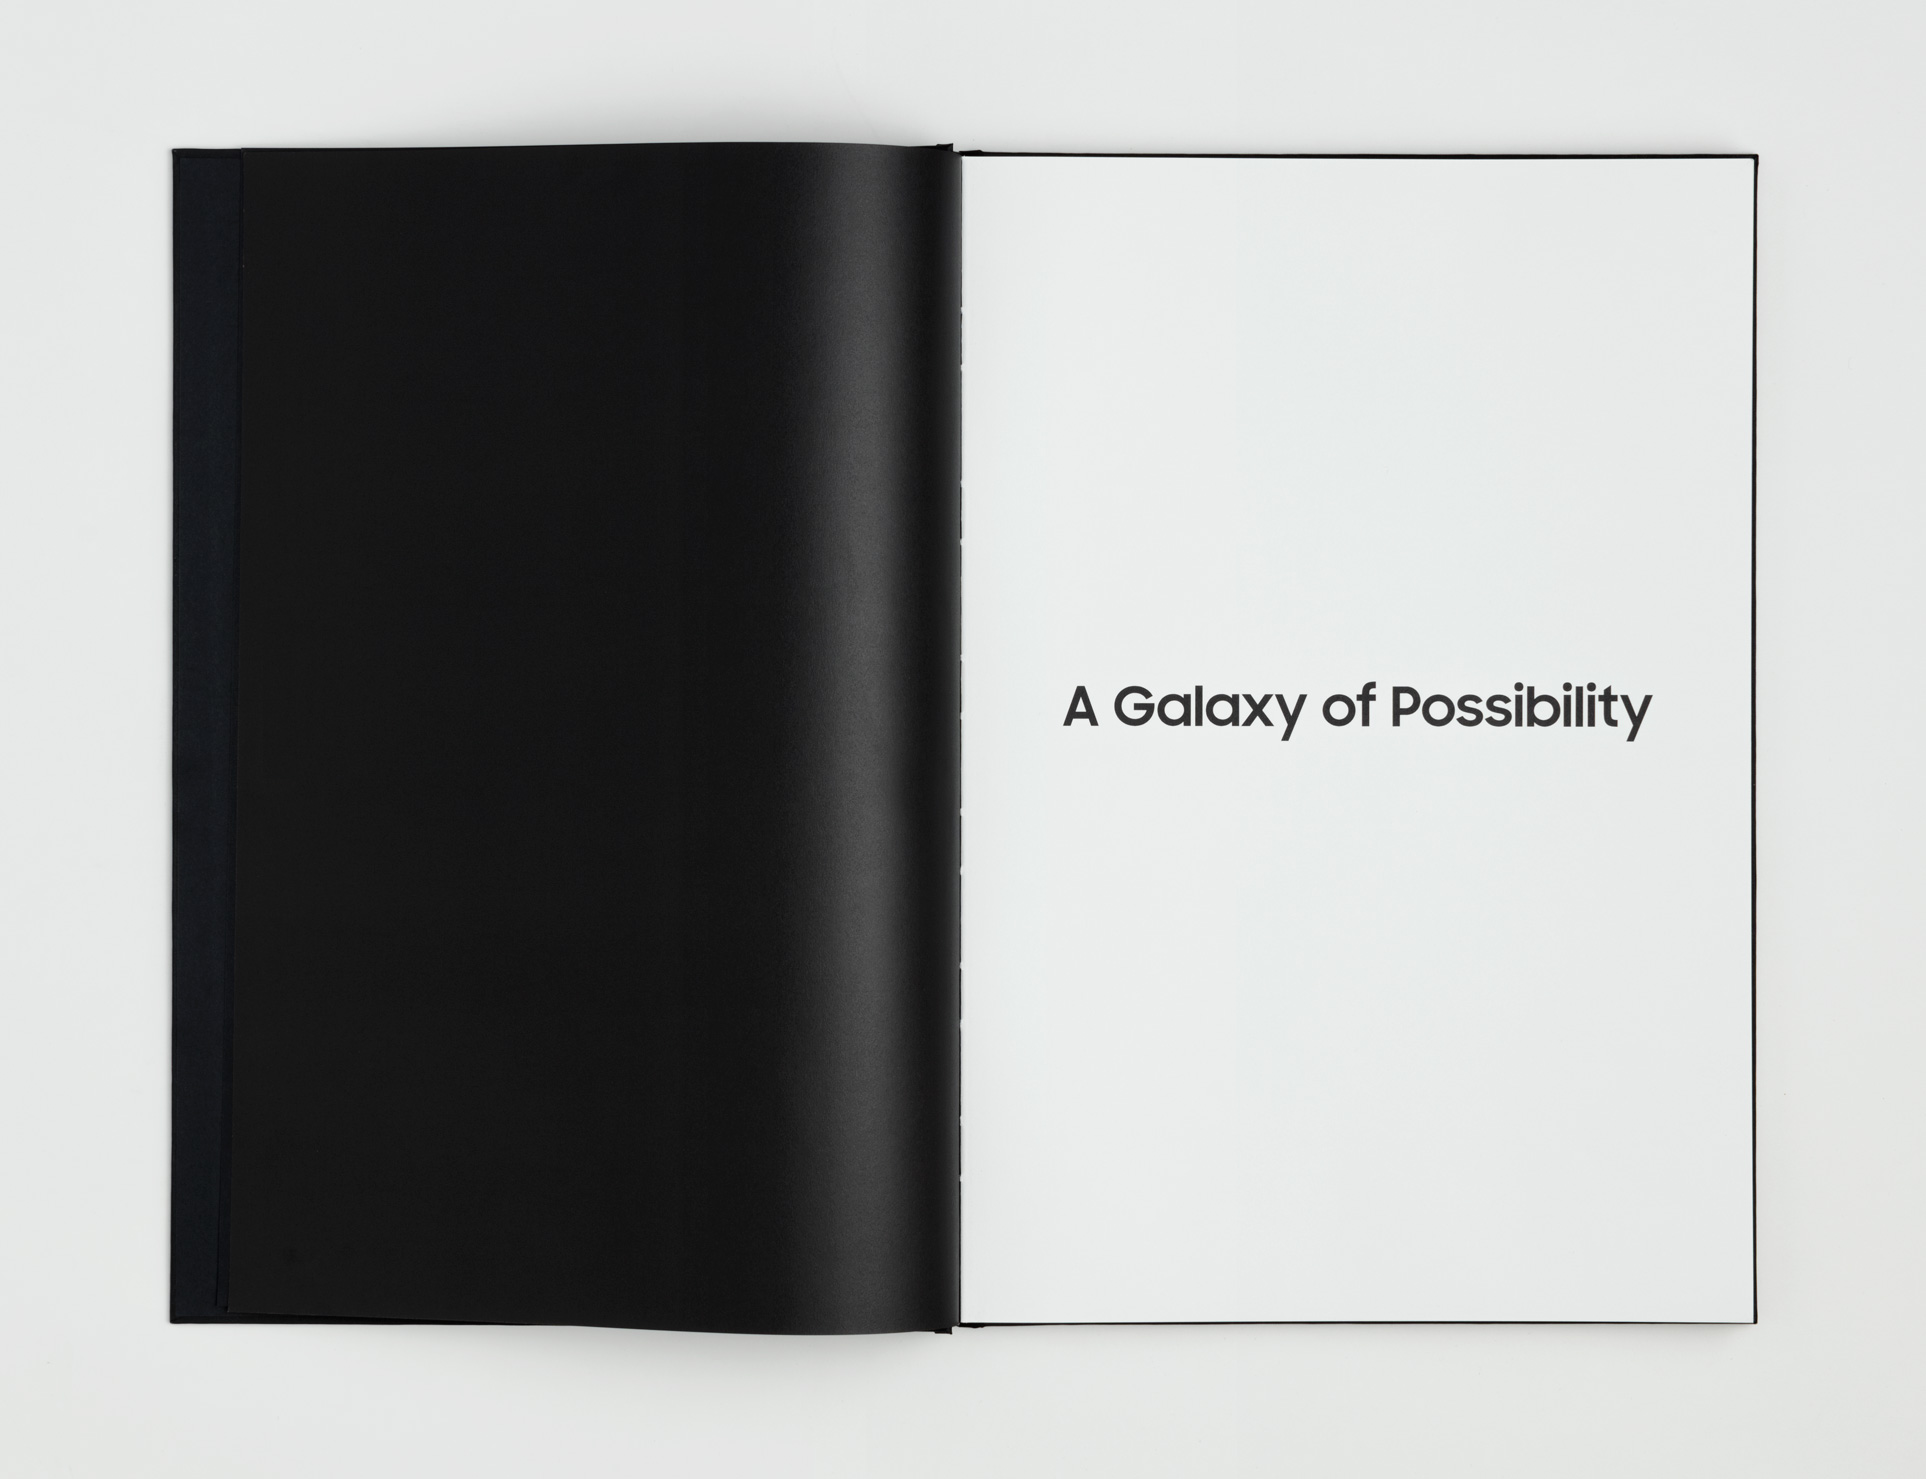 A_Galaxy_of_Possibility_Book_Spread_11.jpg